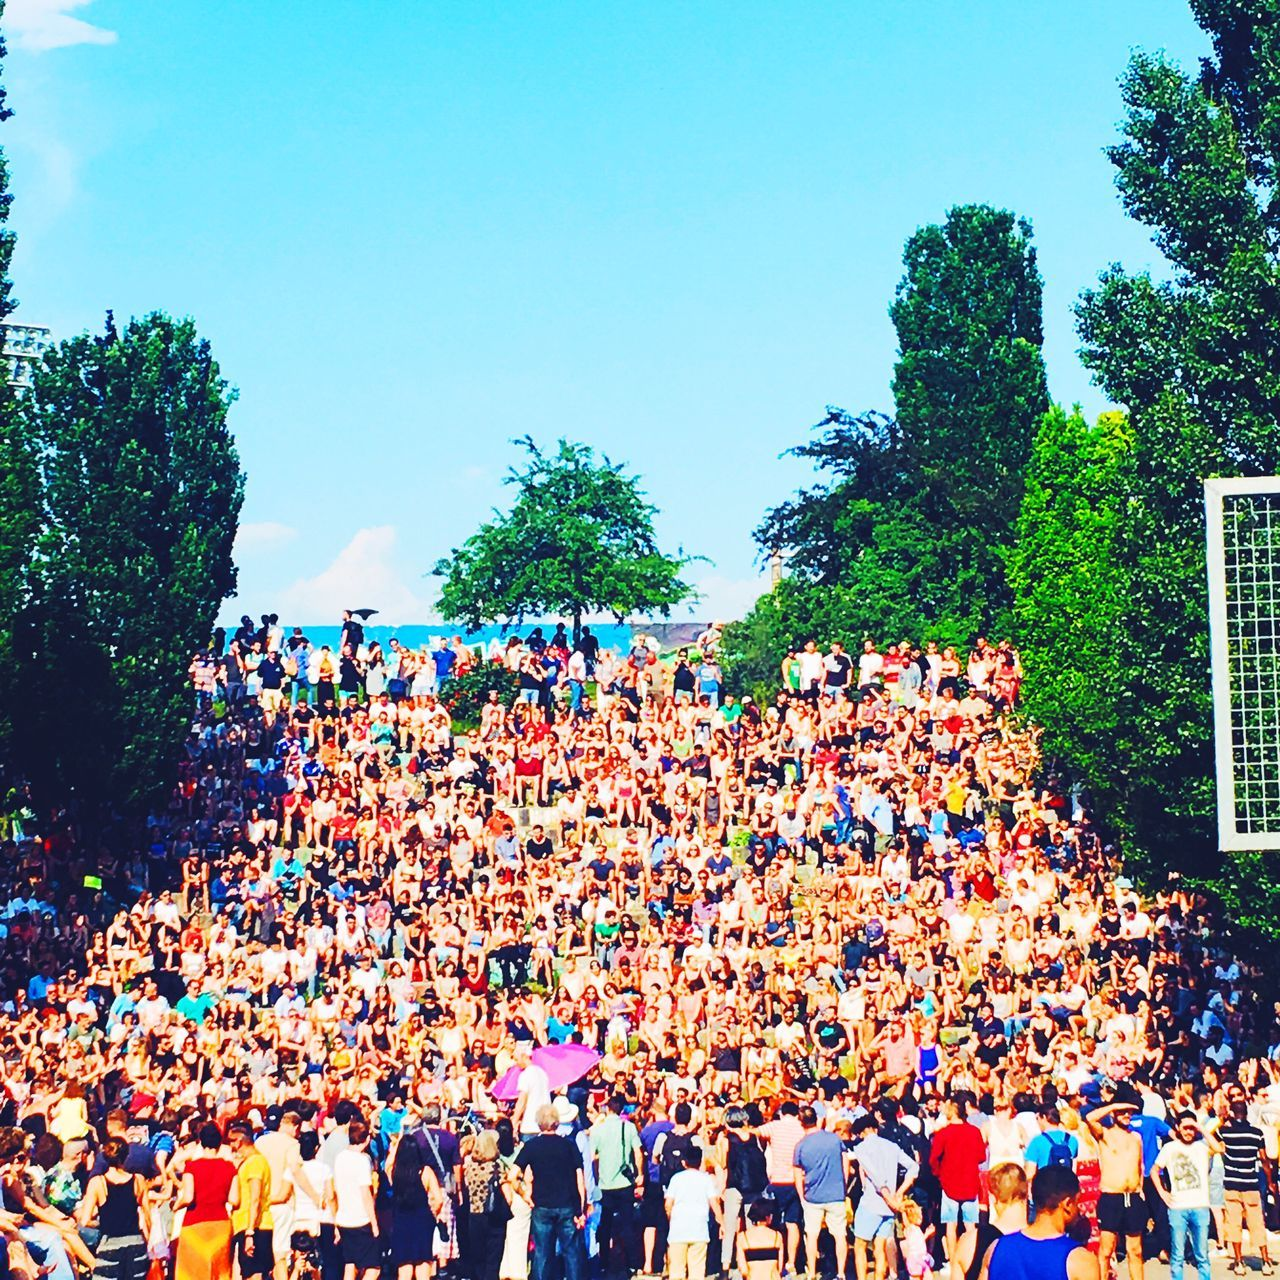 Berlin Mauerpark Sommer Summerinberlin Karaoke Park Nature Realpeople Large Group Of People Crowd Outdoors Celebration